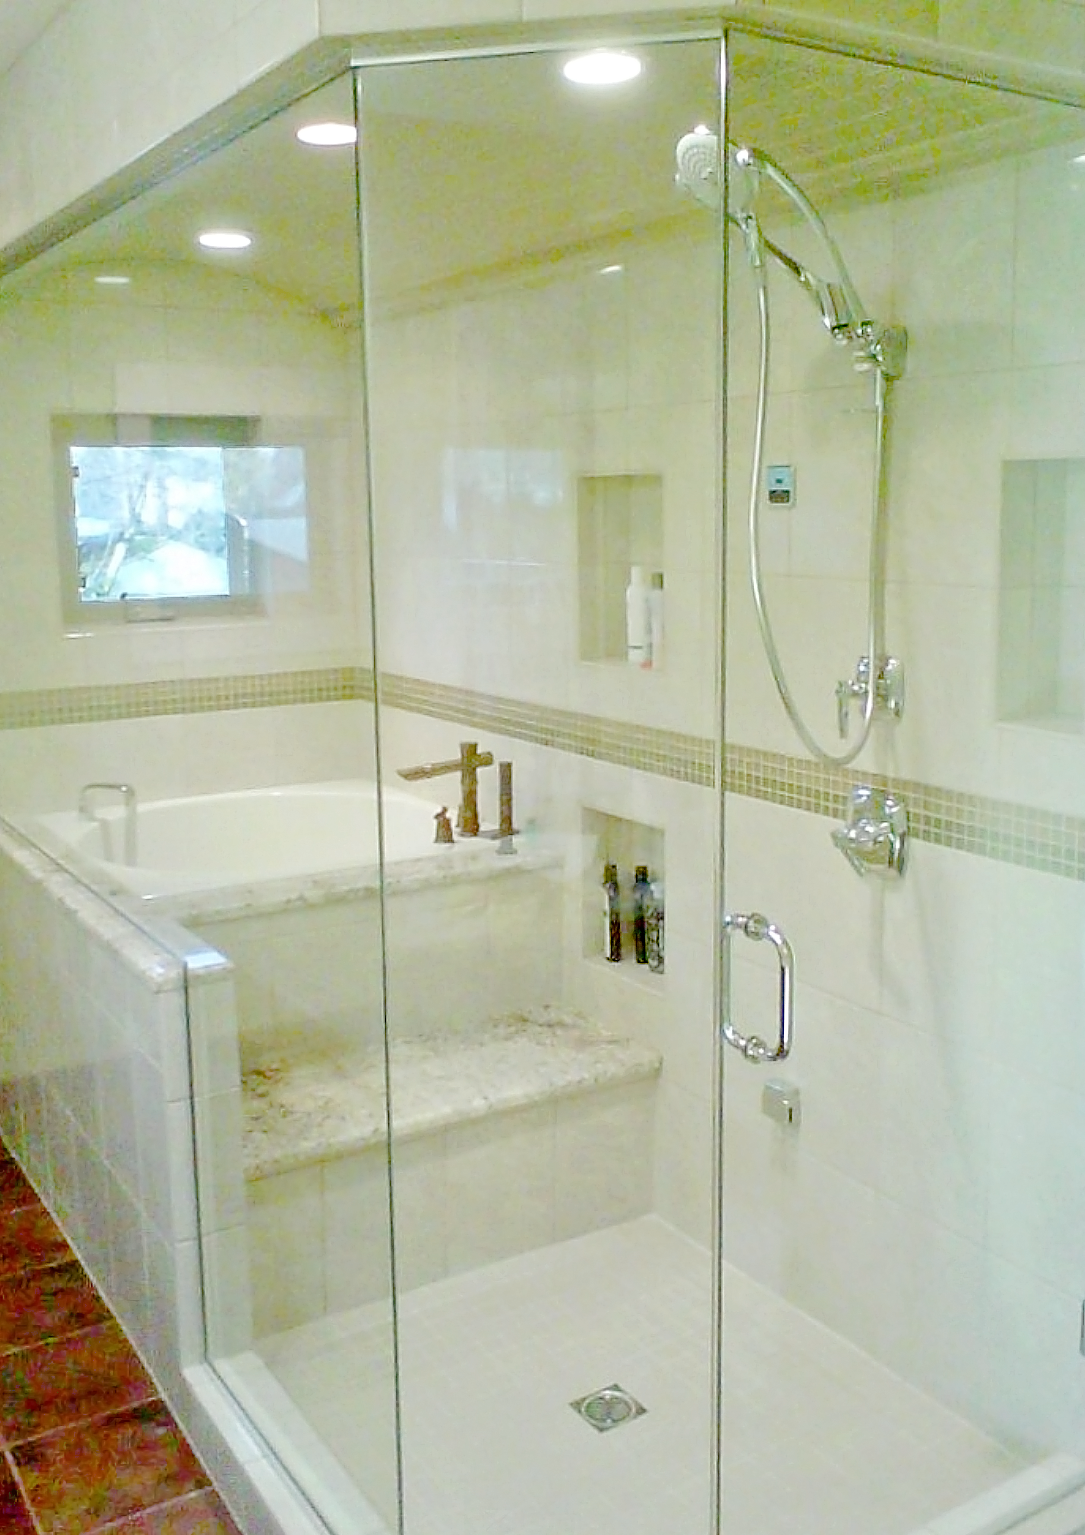 Walk In Shower With Japanese Soaking Tub; Just The Layout I Was Looking For!